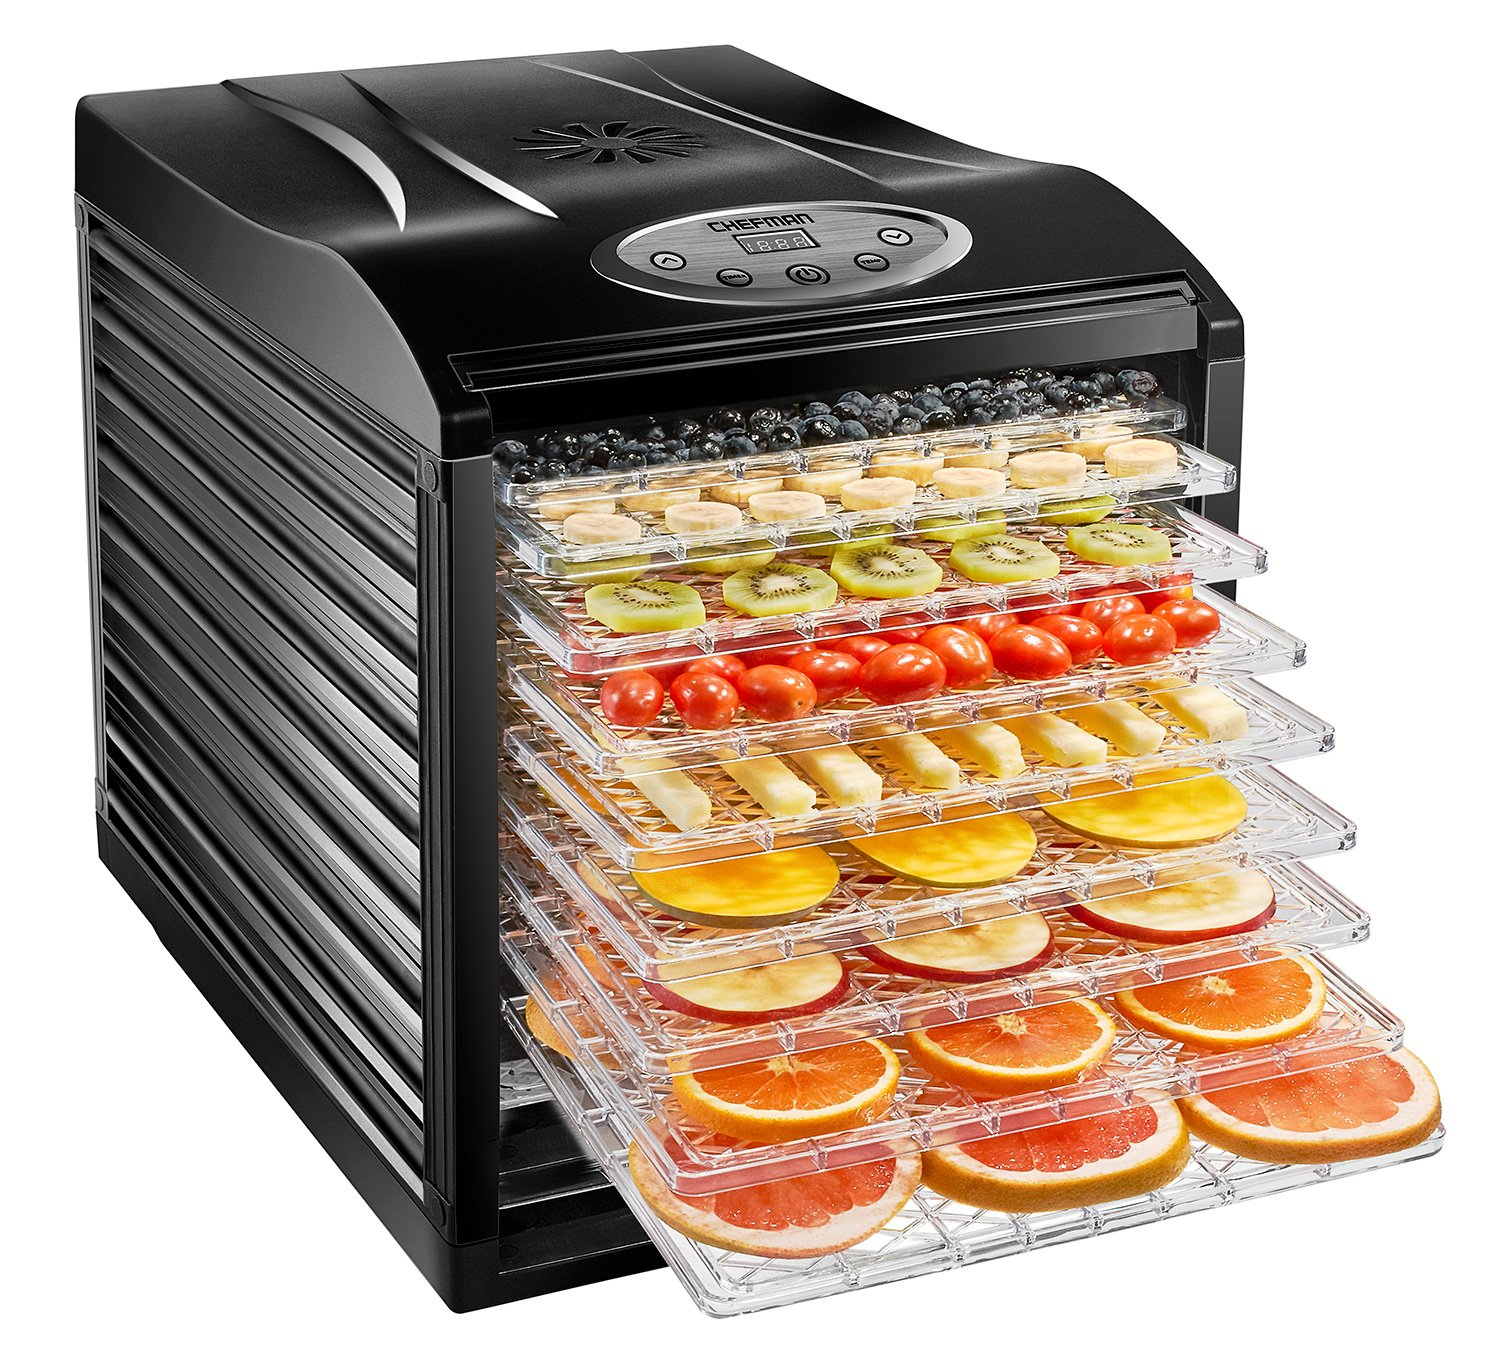 Chefman Food Dehydrator Machine Professional Electric Multi-Tier Food Preserver, Meat or Beef Jerky Maker, Fruit & Vegetable Dryer with 9 Slide Out Trays & Transparent Door - RJ43-SQ-9